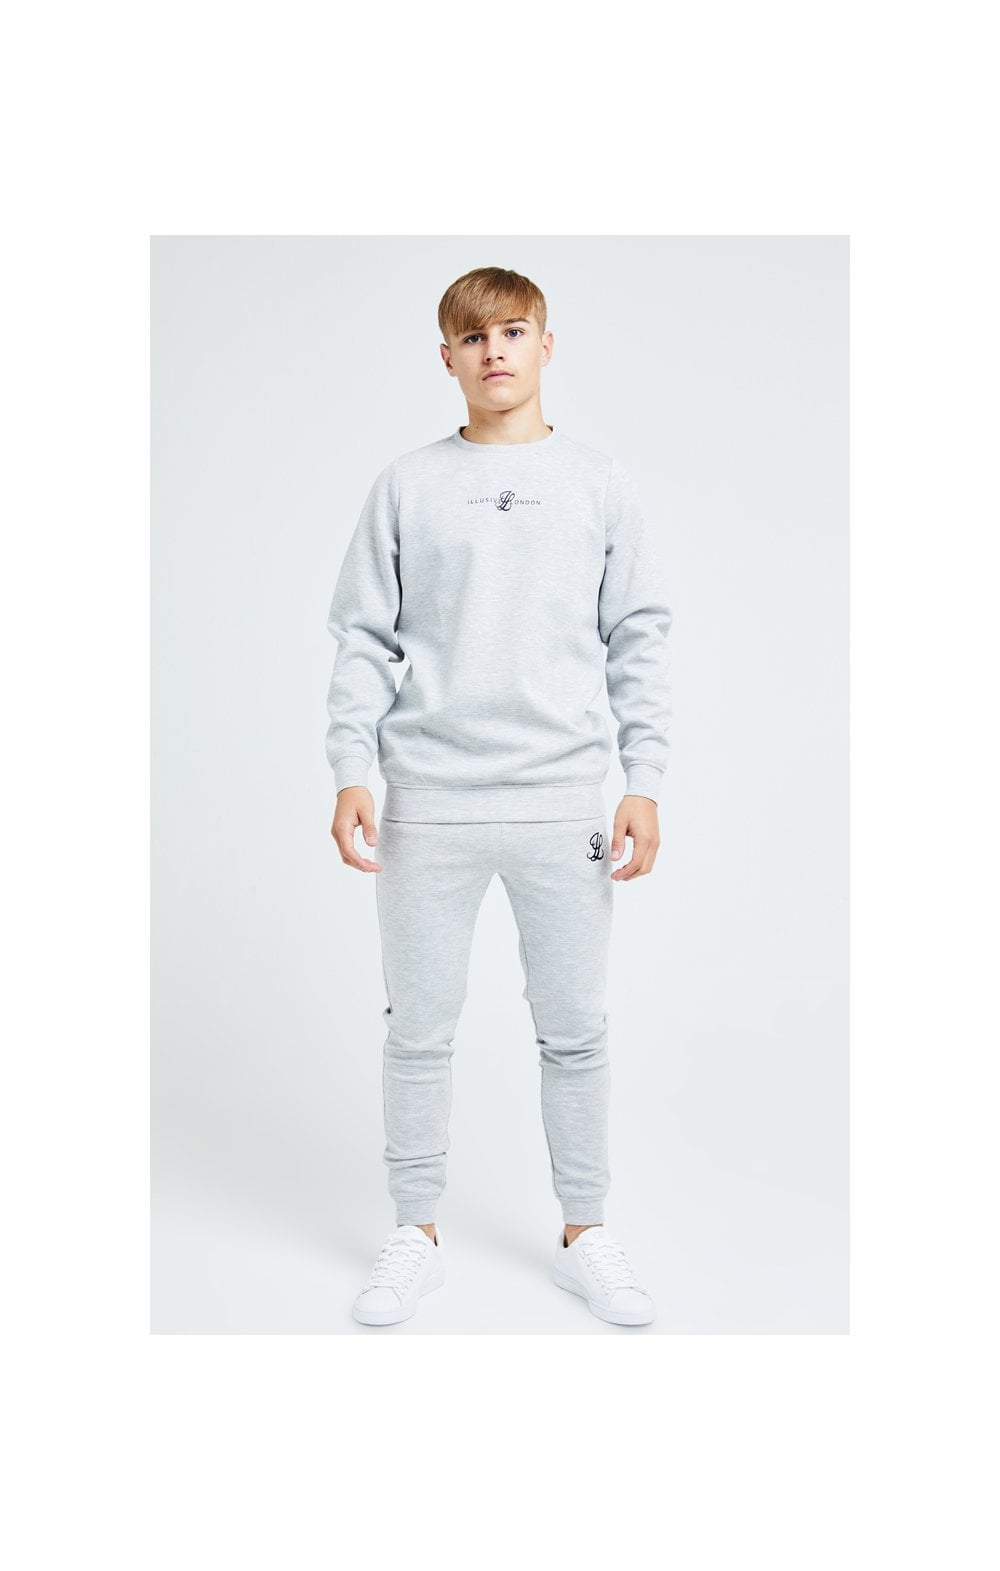 Illusive London Dual Crew Sweater - Grey (2)